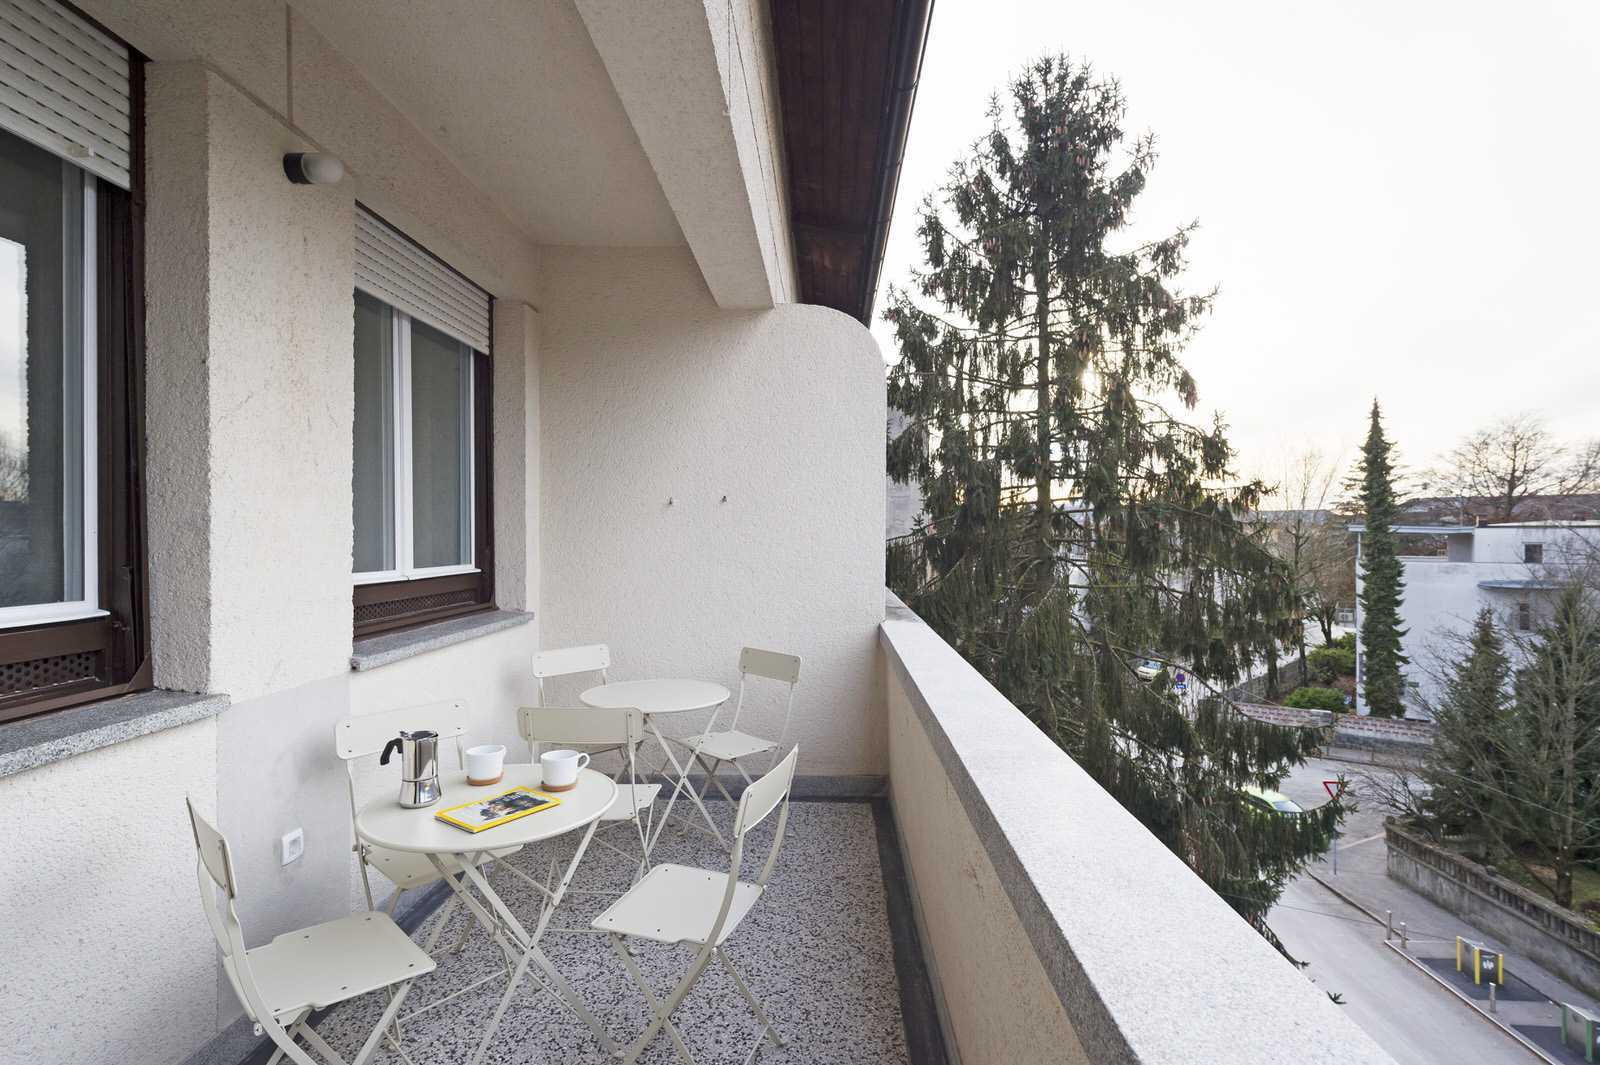 Large balcony overlooking a quiet street towards the Tivoli park and the mountains